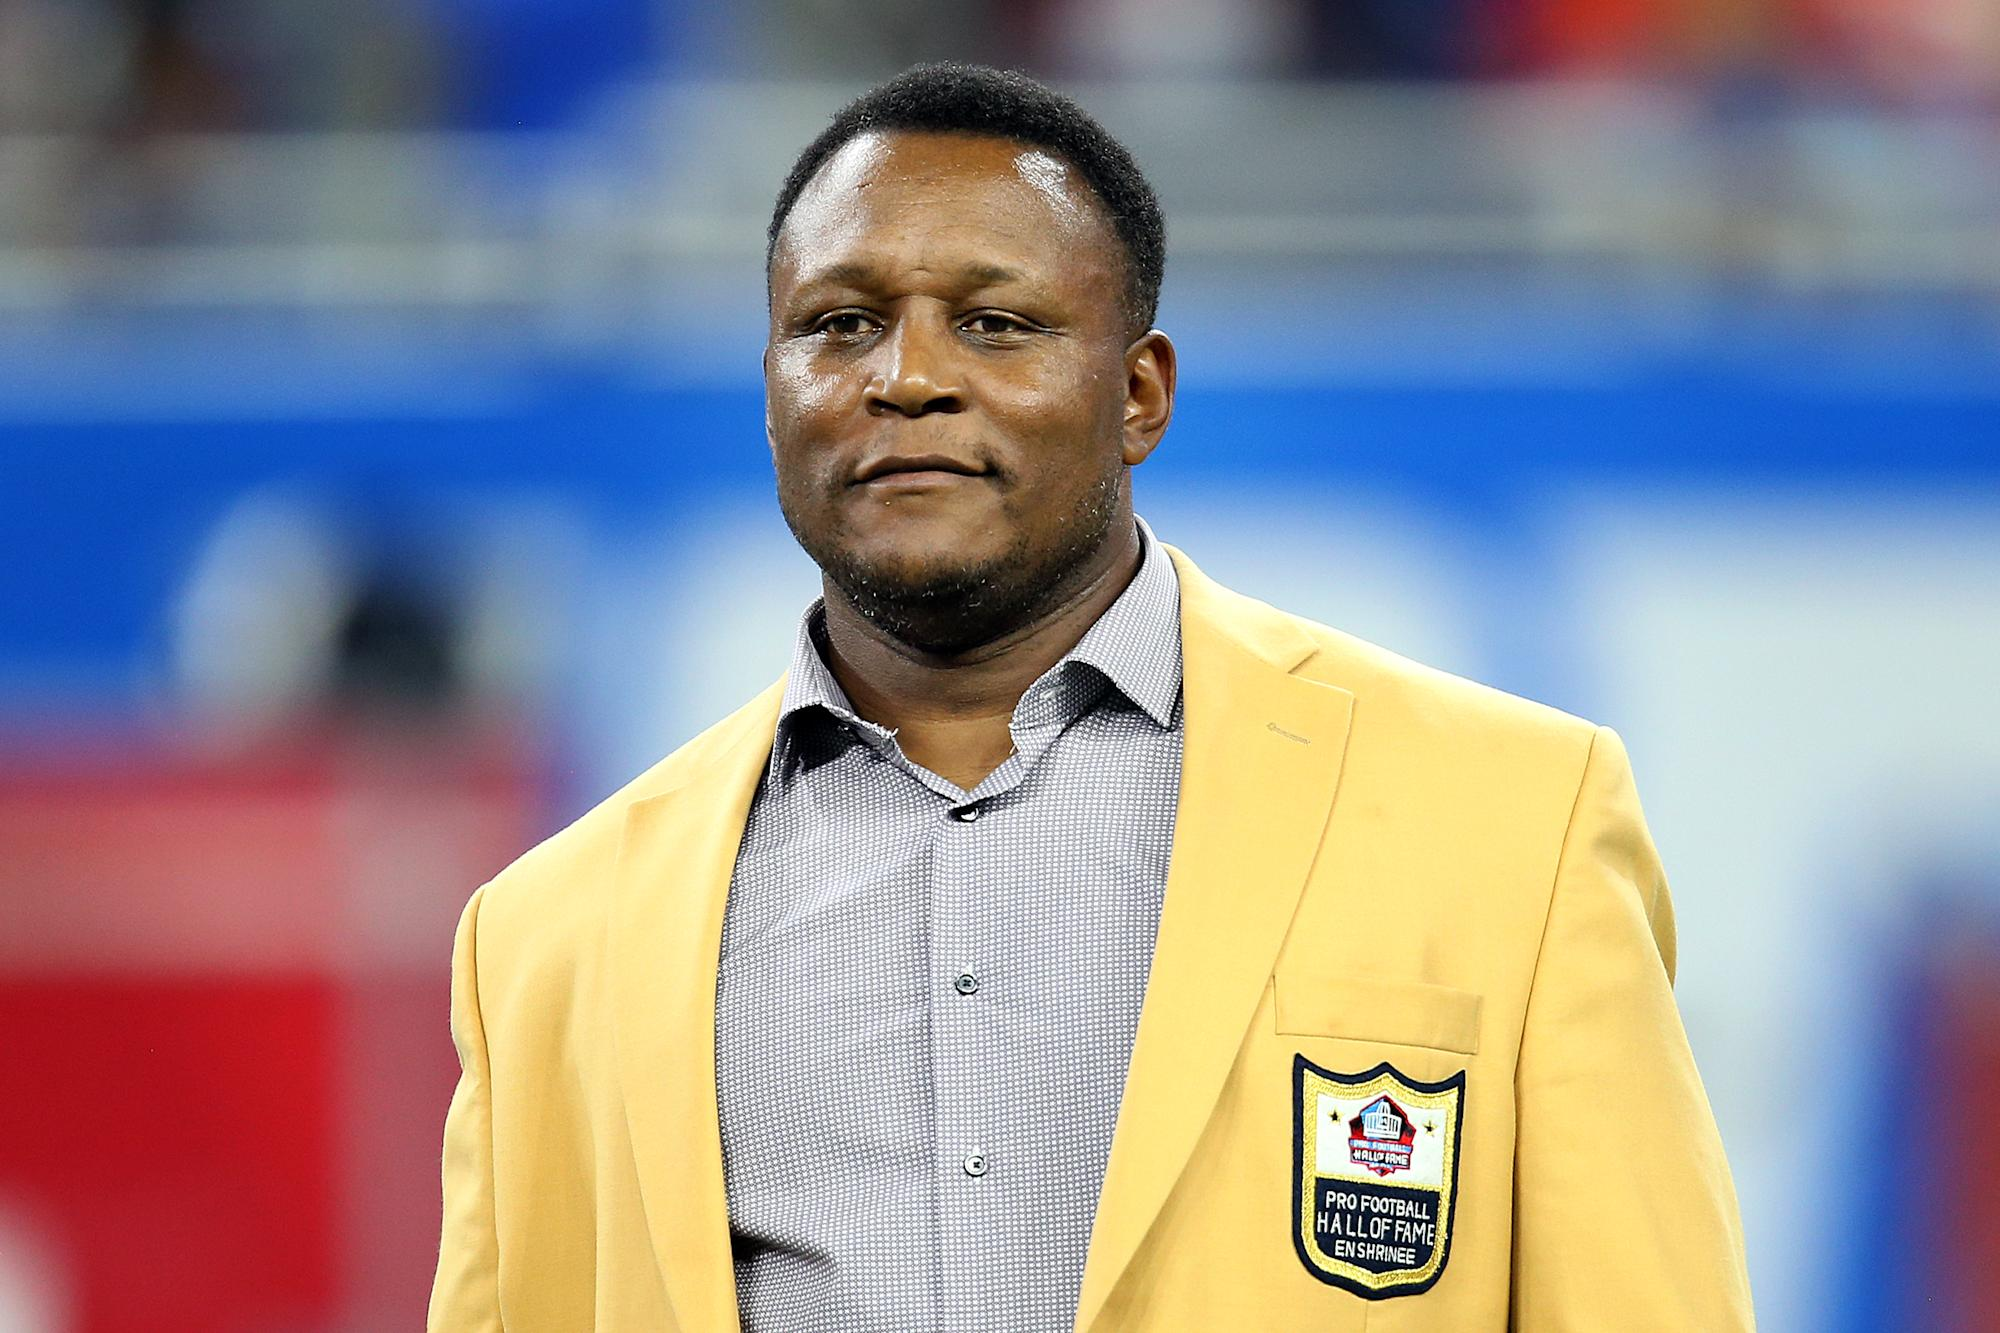 Barry Sanders says he's tested positive for COVID-19 despite being fully vaccinated